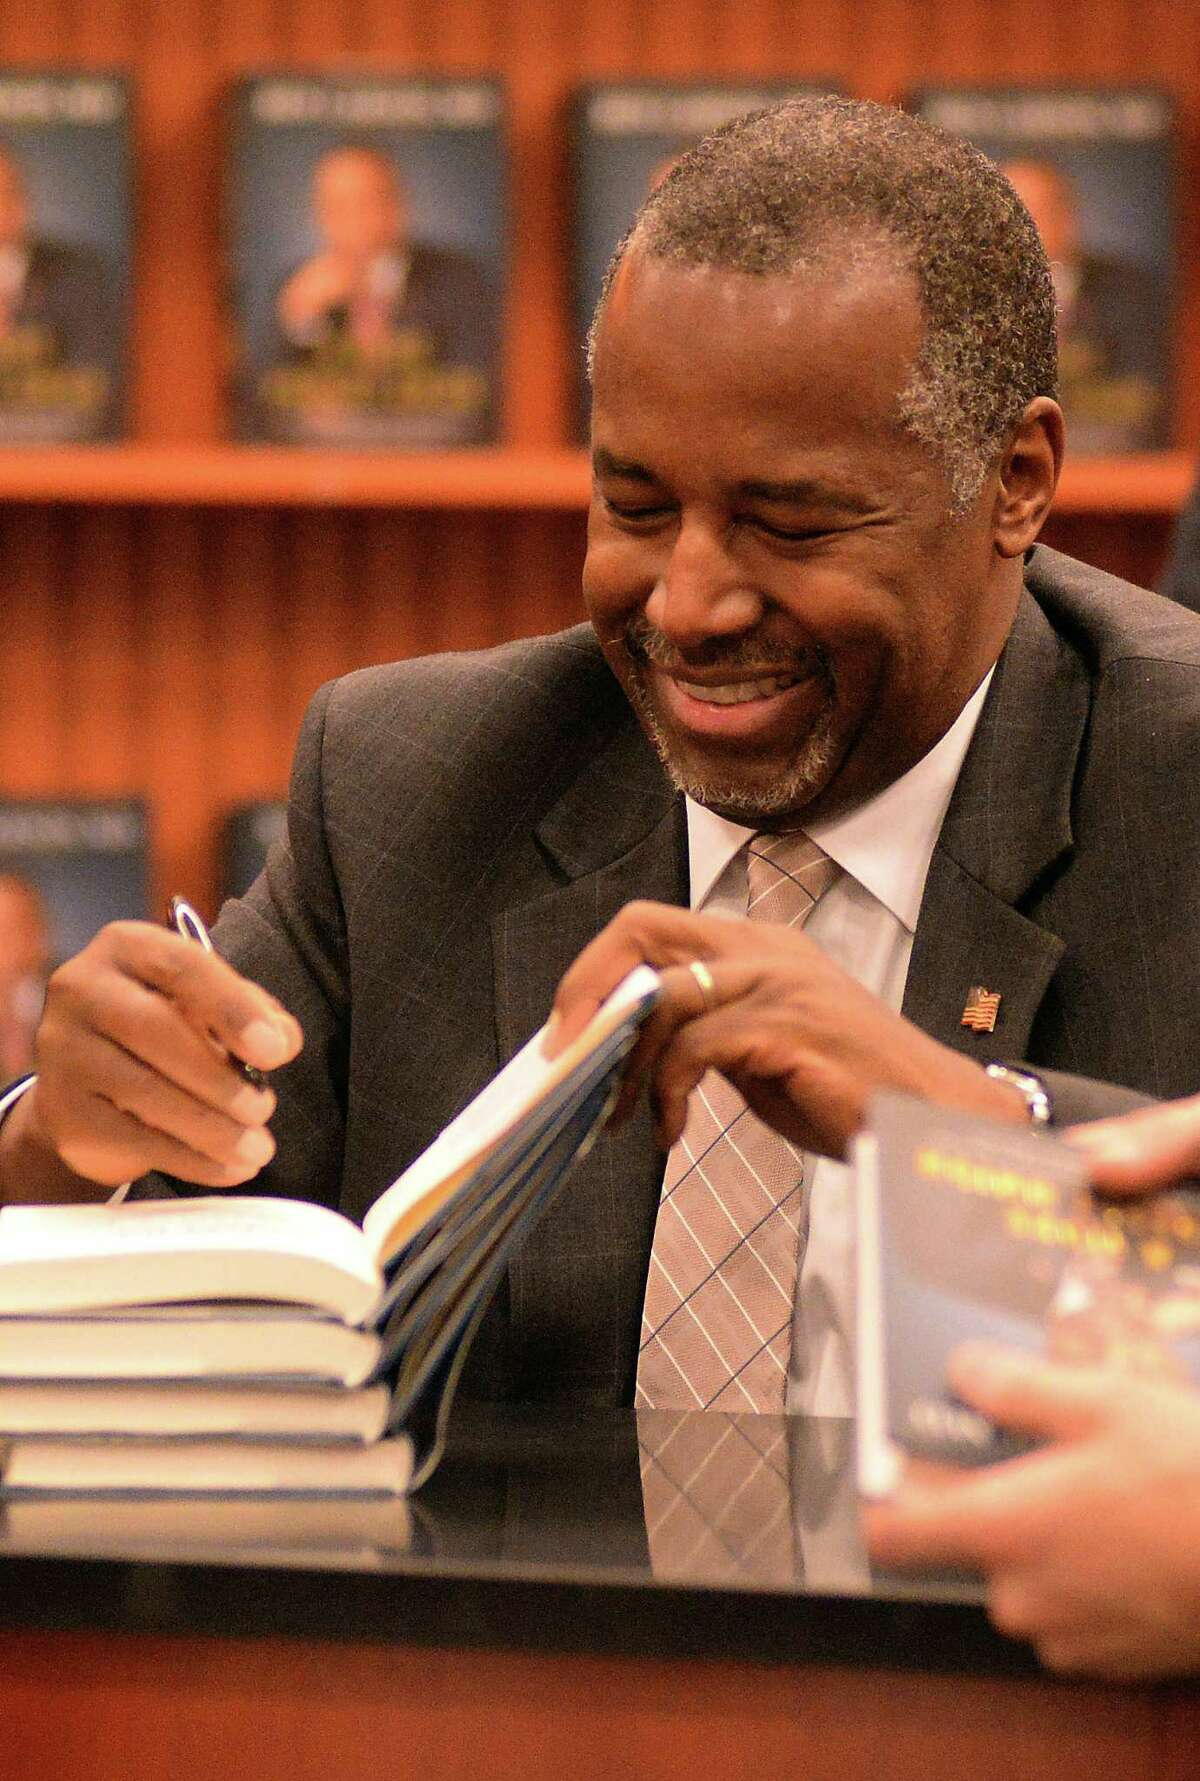 Presidential candidate Ben Carson, autographs his book during his book signing event in Lake Sumter Landing, The Villages, Fla., Monday, Nov. 2, 2015.